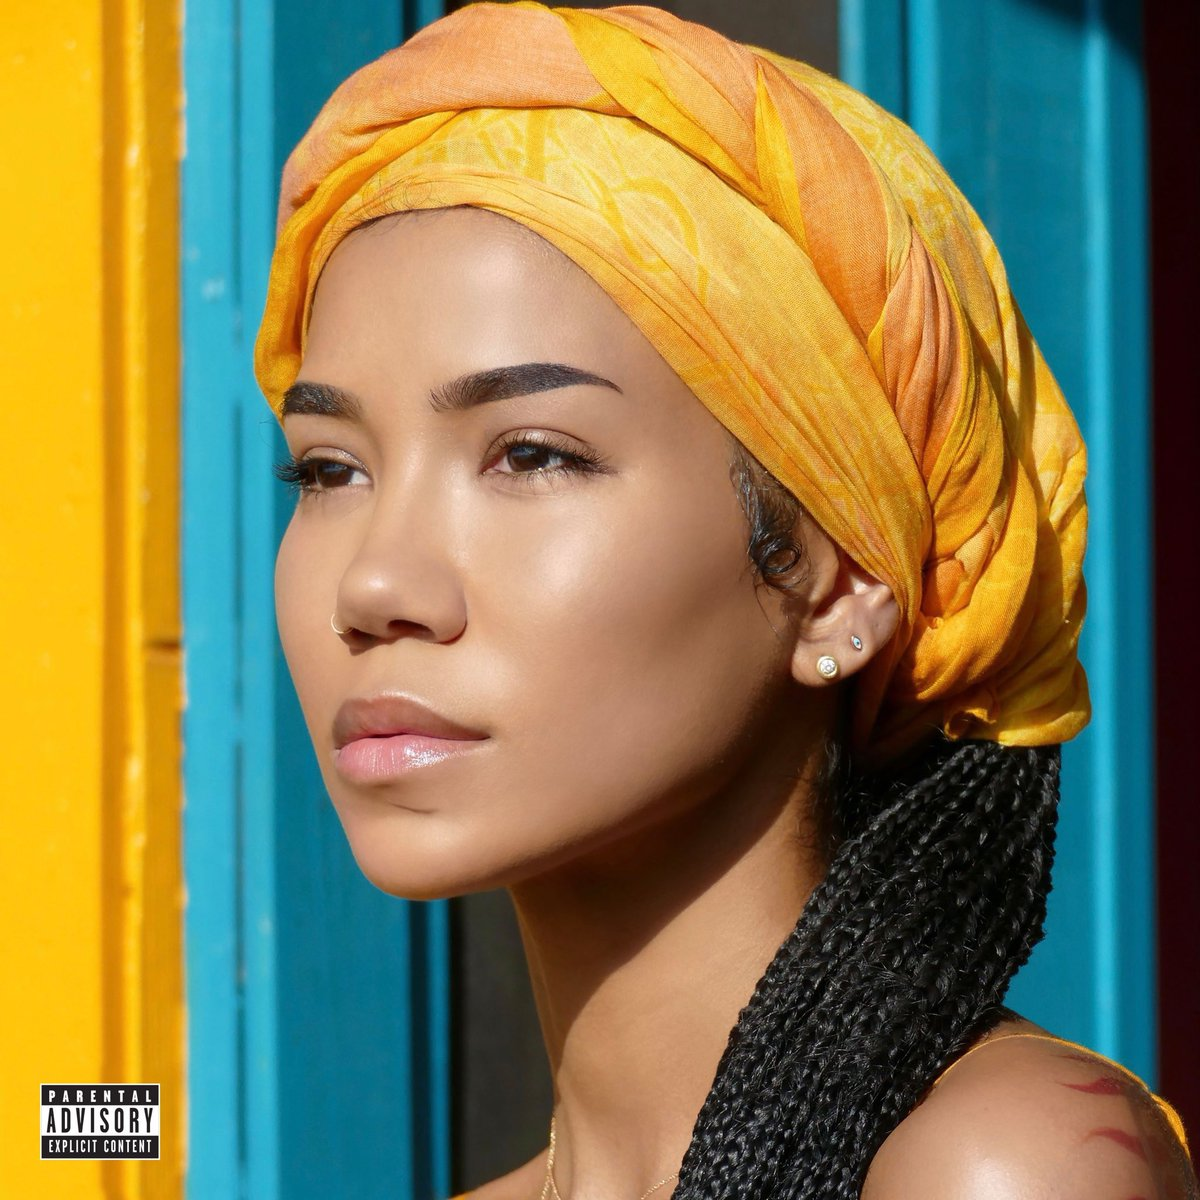 .@JheneAiko has unveiled the tracklist for her upcoming album, #CHILOMBO which features collaborations from @BigSean, @HERMusicX, @1Future, @Miguel, @JohnLegend, @TyDollaSign & more. 🌋